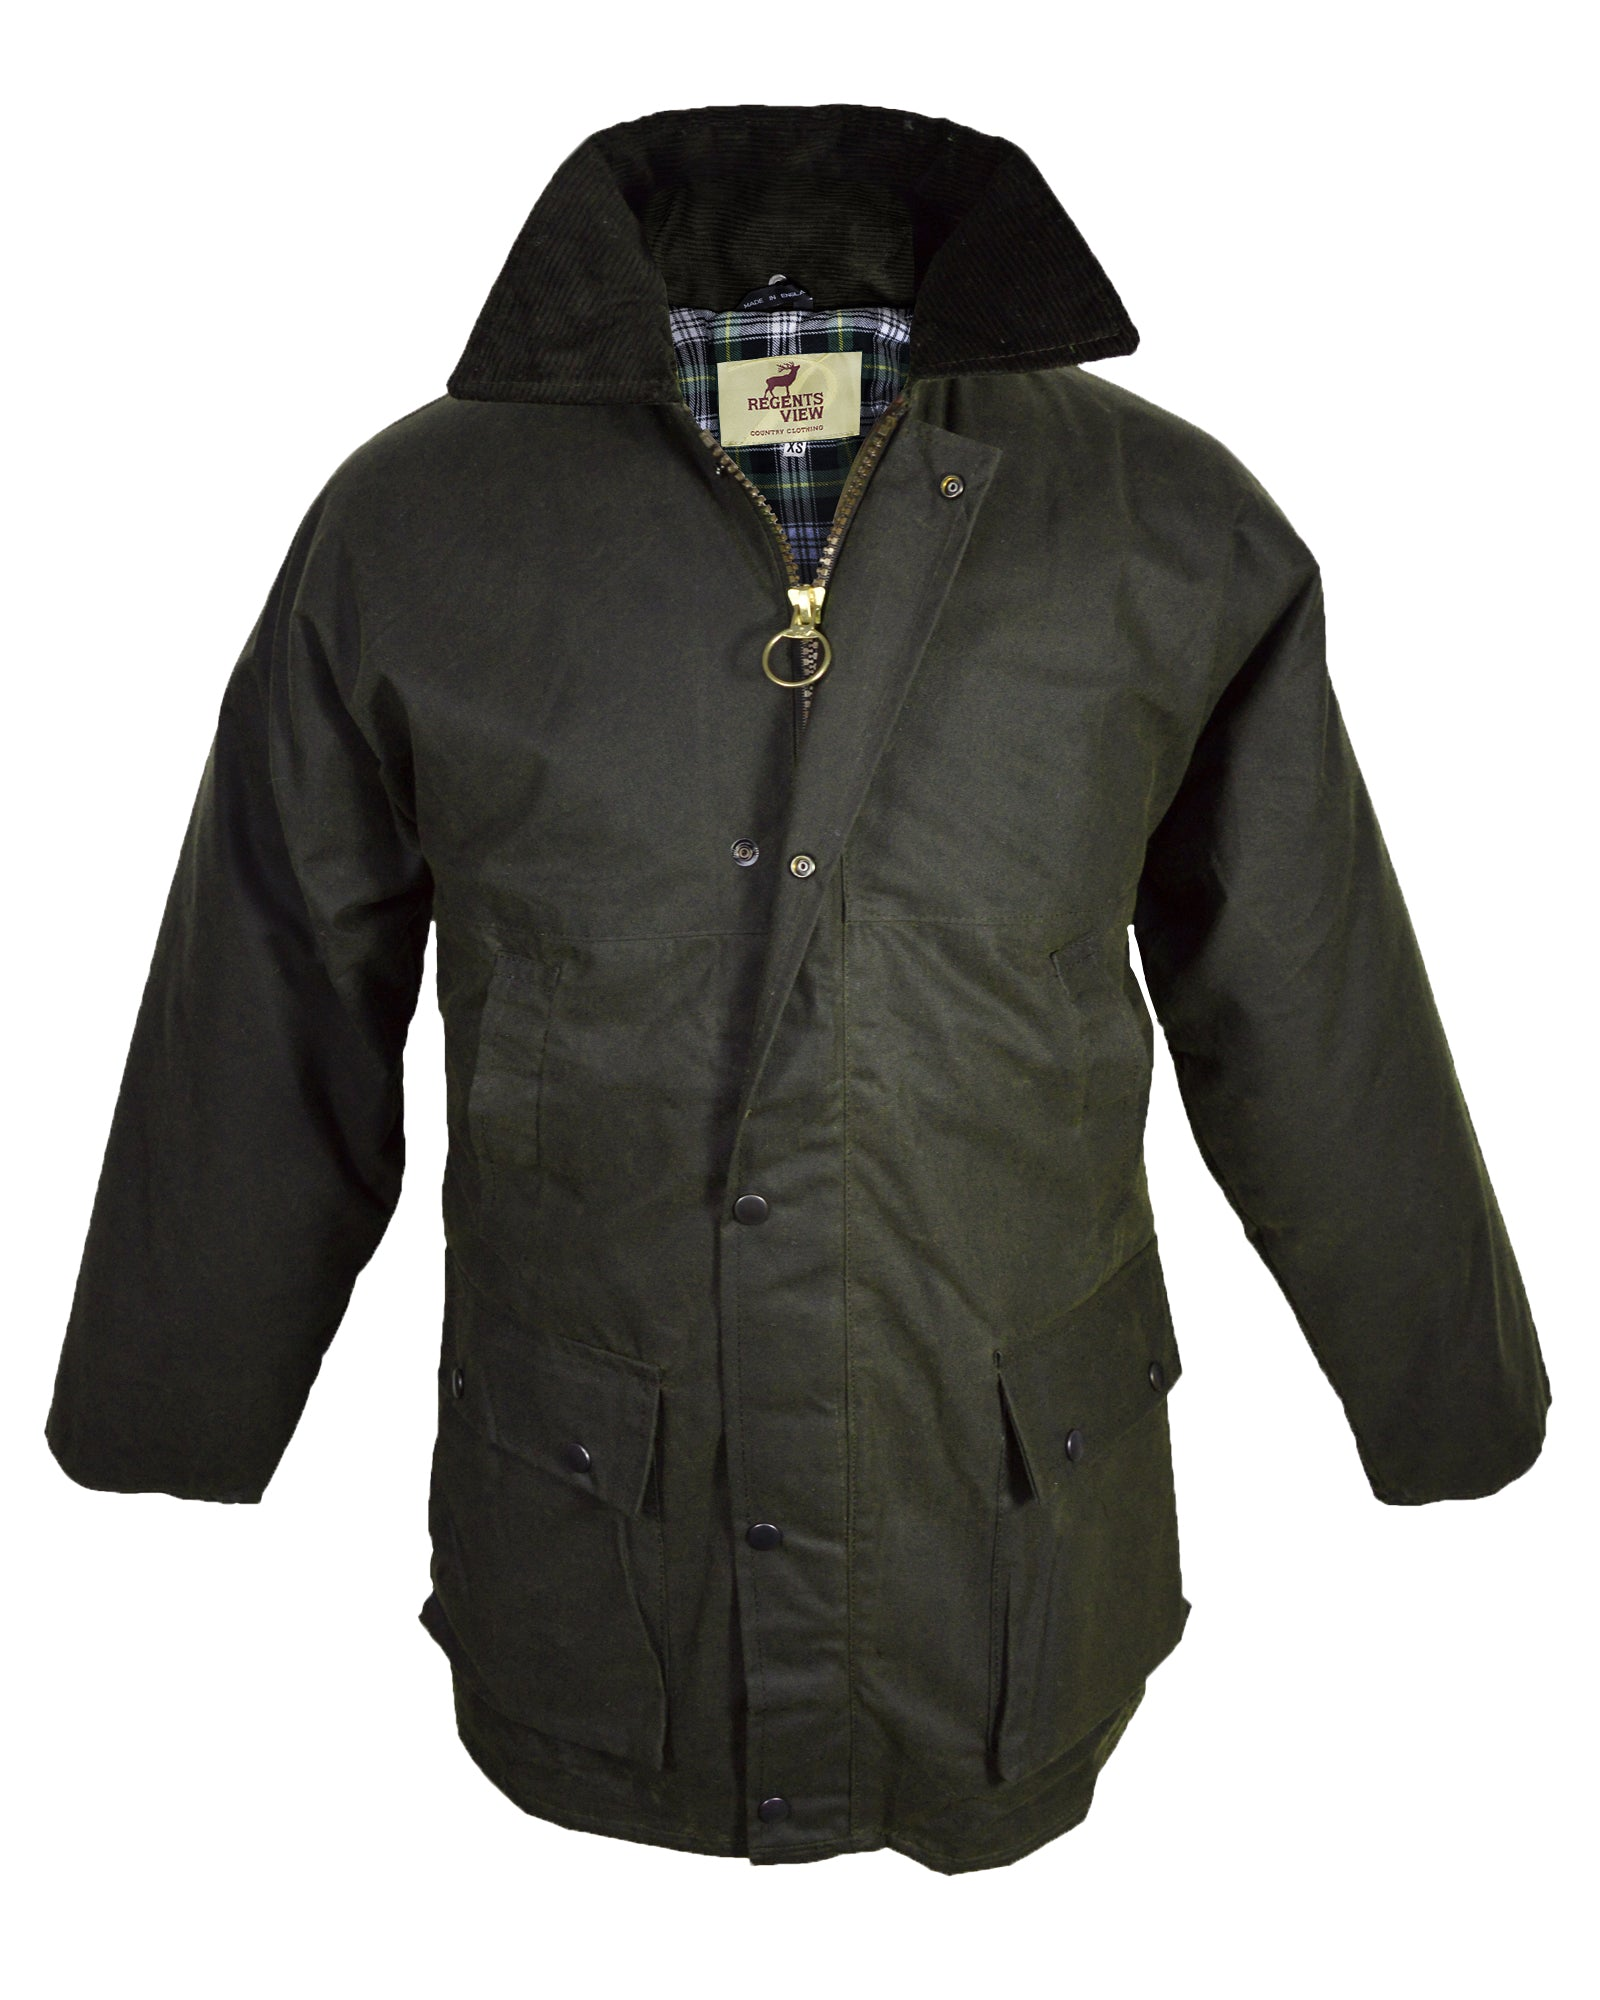 c5b6ede9bf Regents View Padded Waxed Cotton Jacket - Olive – Midlandsclothing